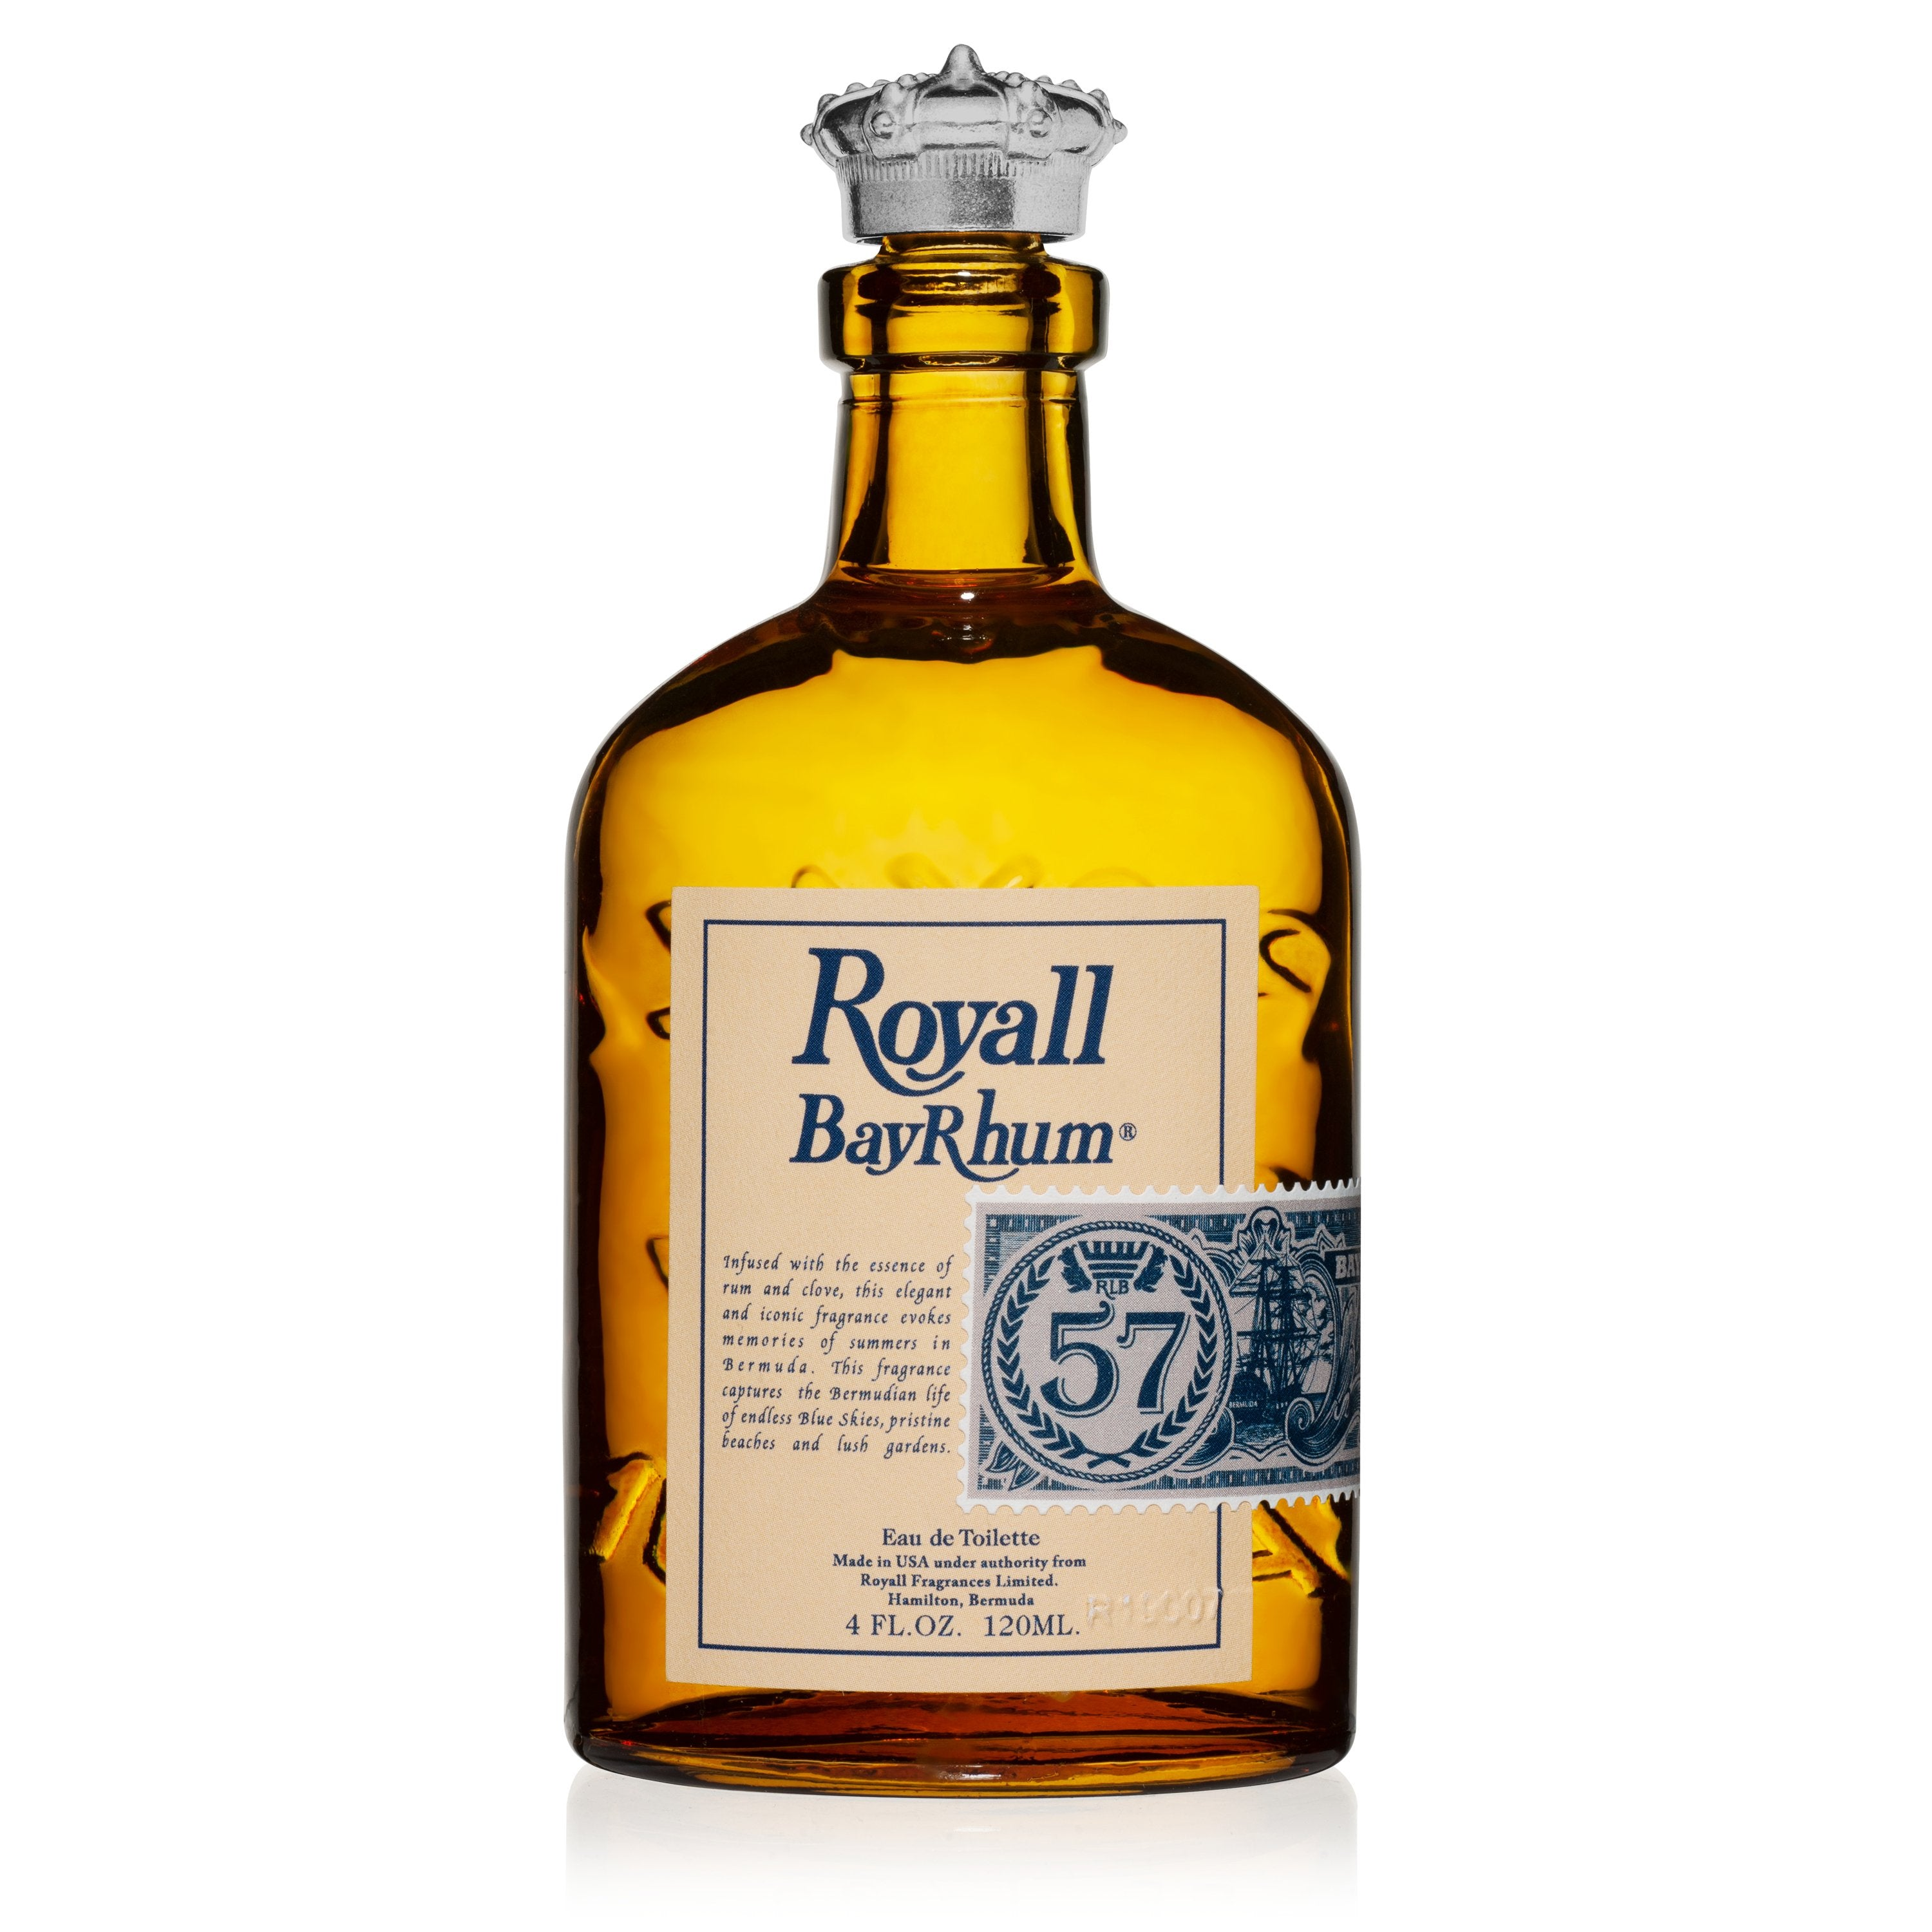 Royall – BayRhum 57 All Purpose Lotion